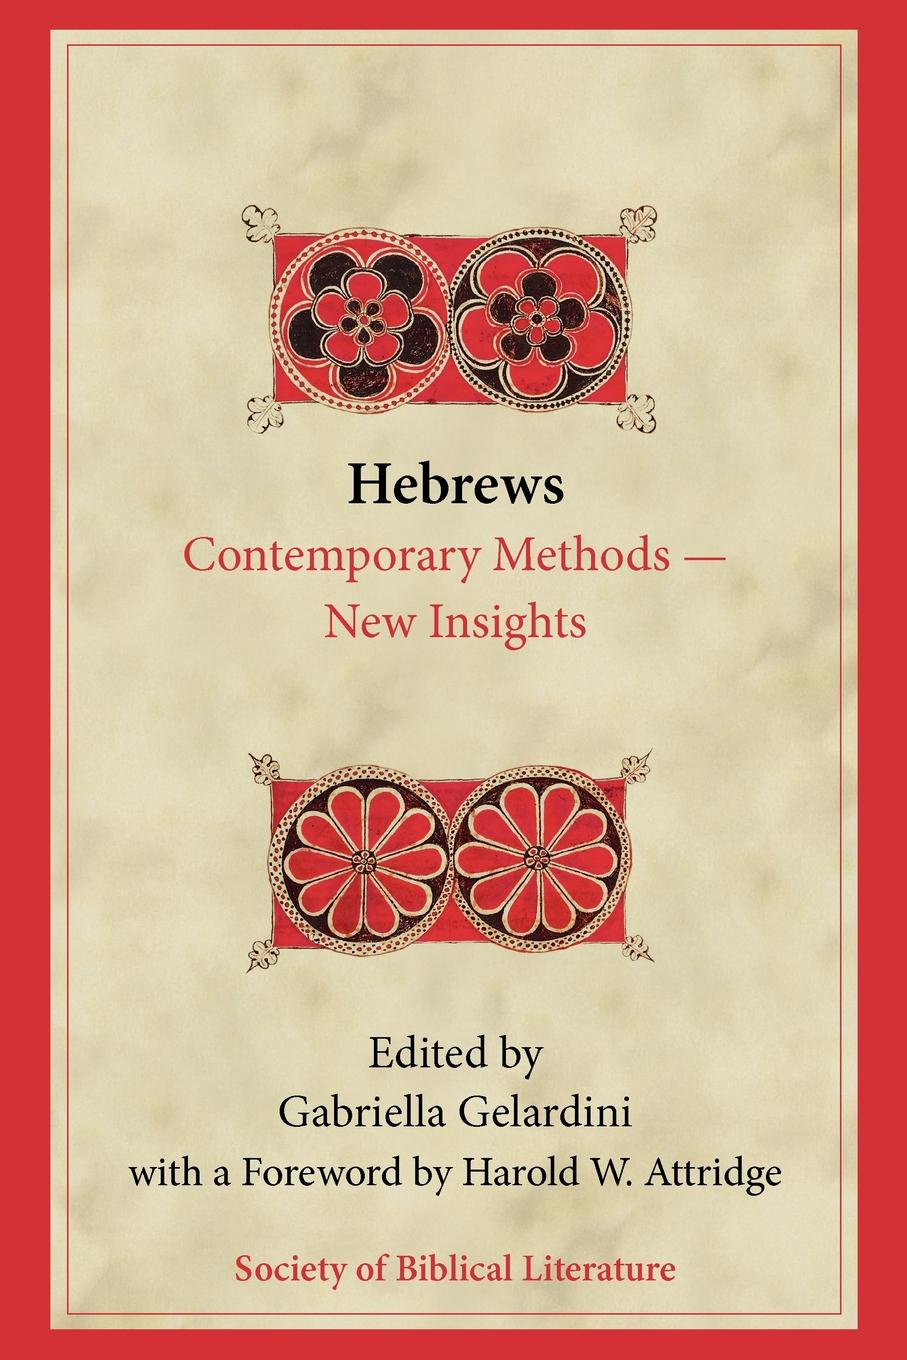 Gabriella Gelardini Hebrews. Contemporary Methods.New Insights